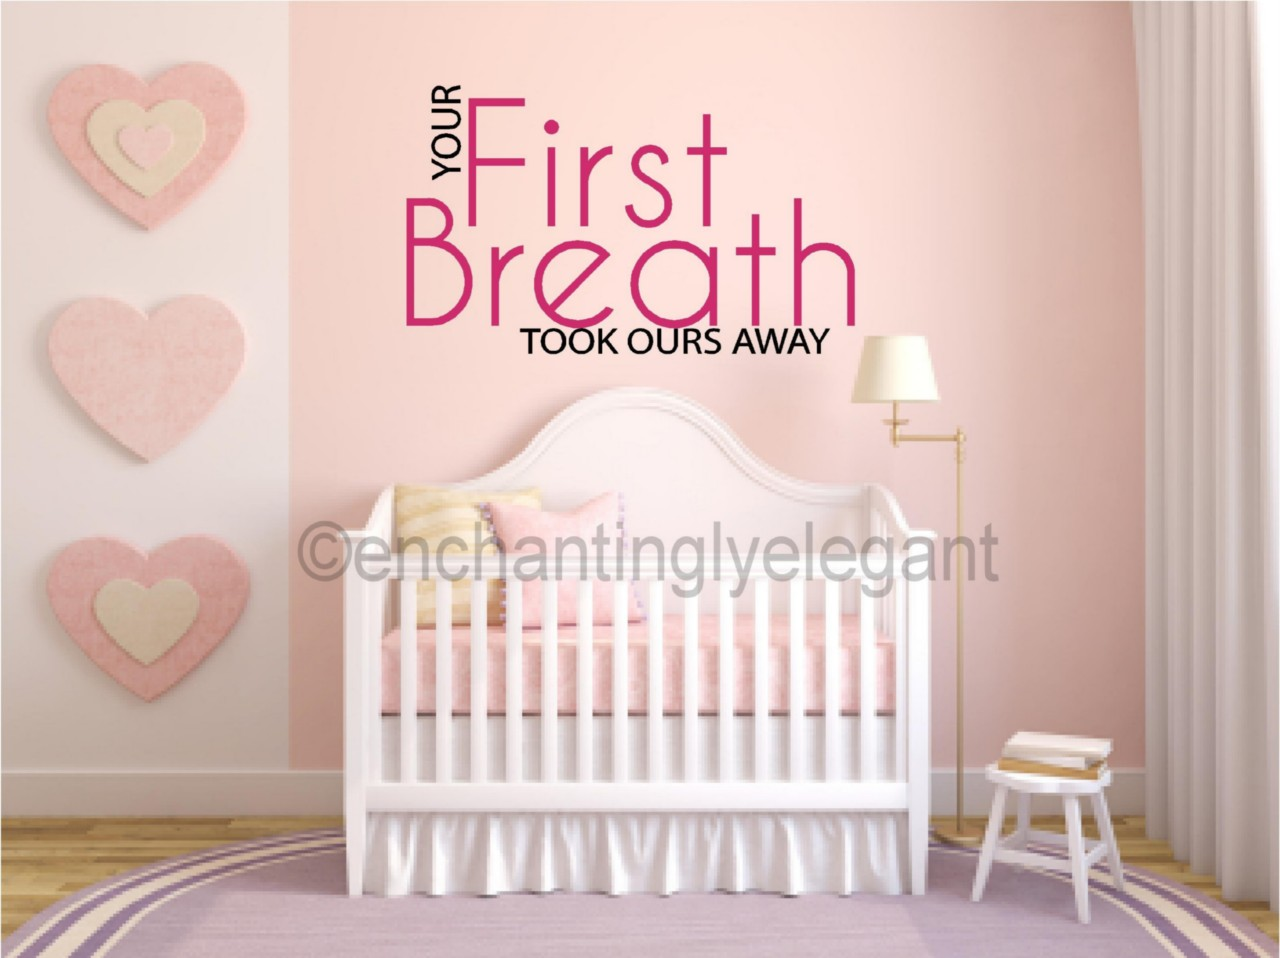 Your First Breath Took Ours Away Baby Nursery Vinyl Decal Wall